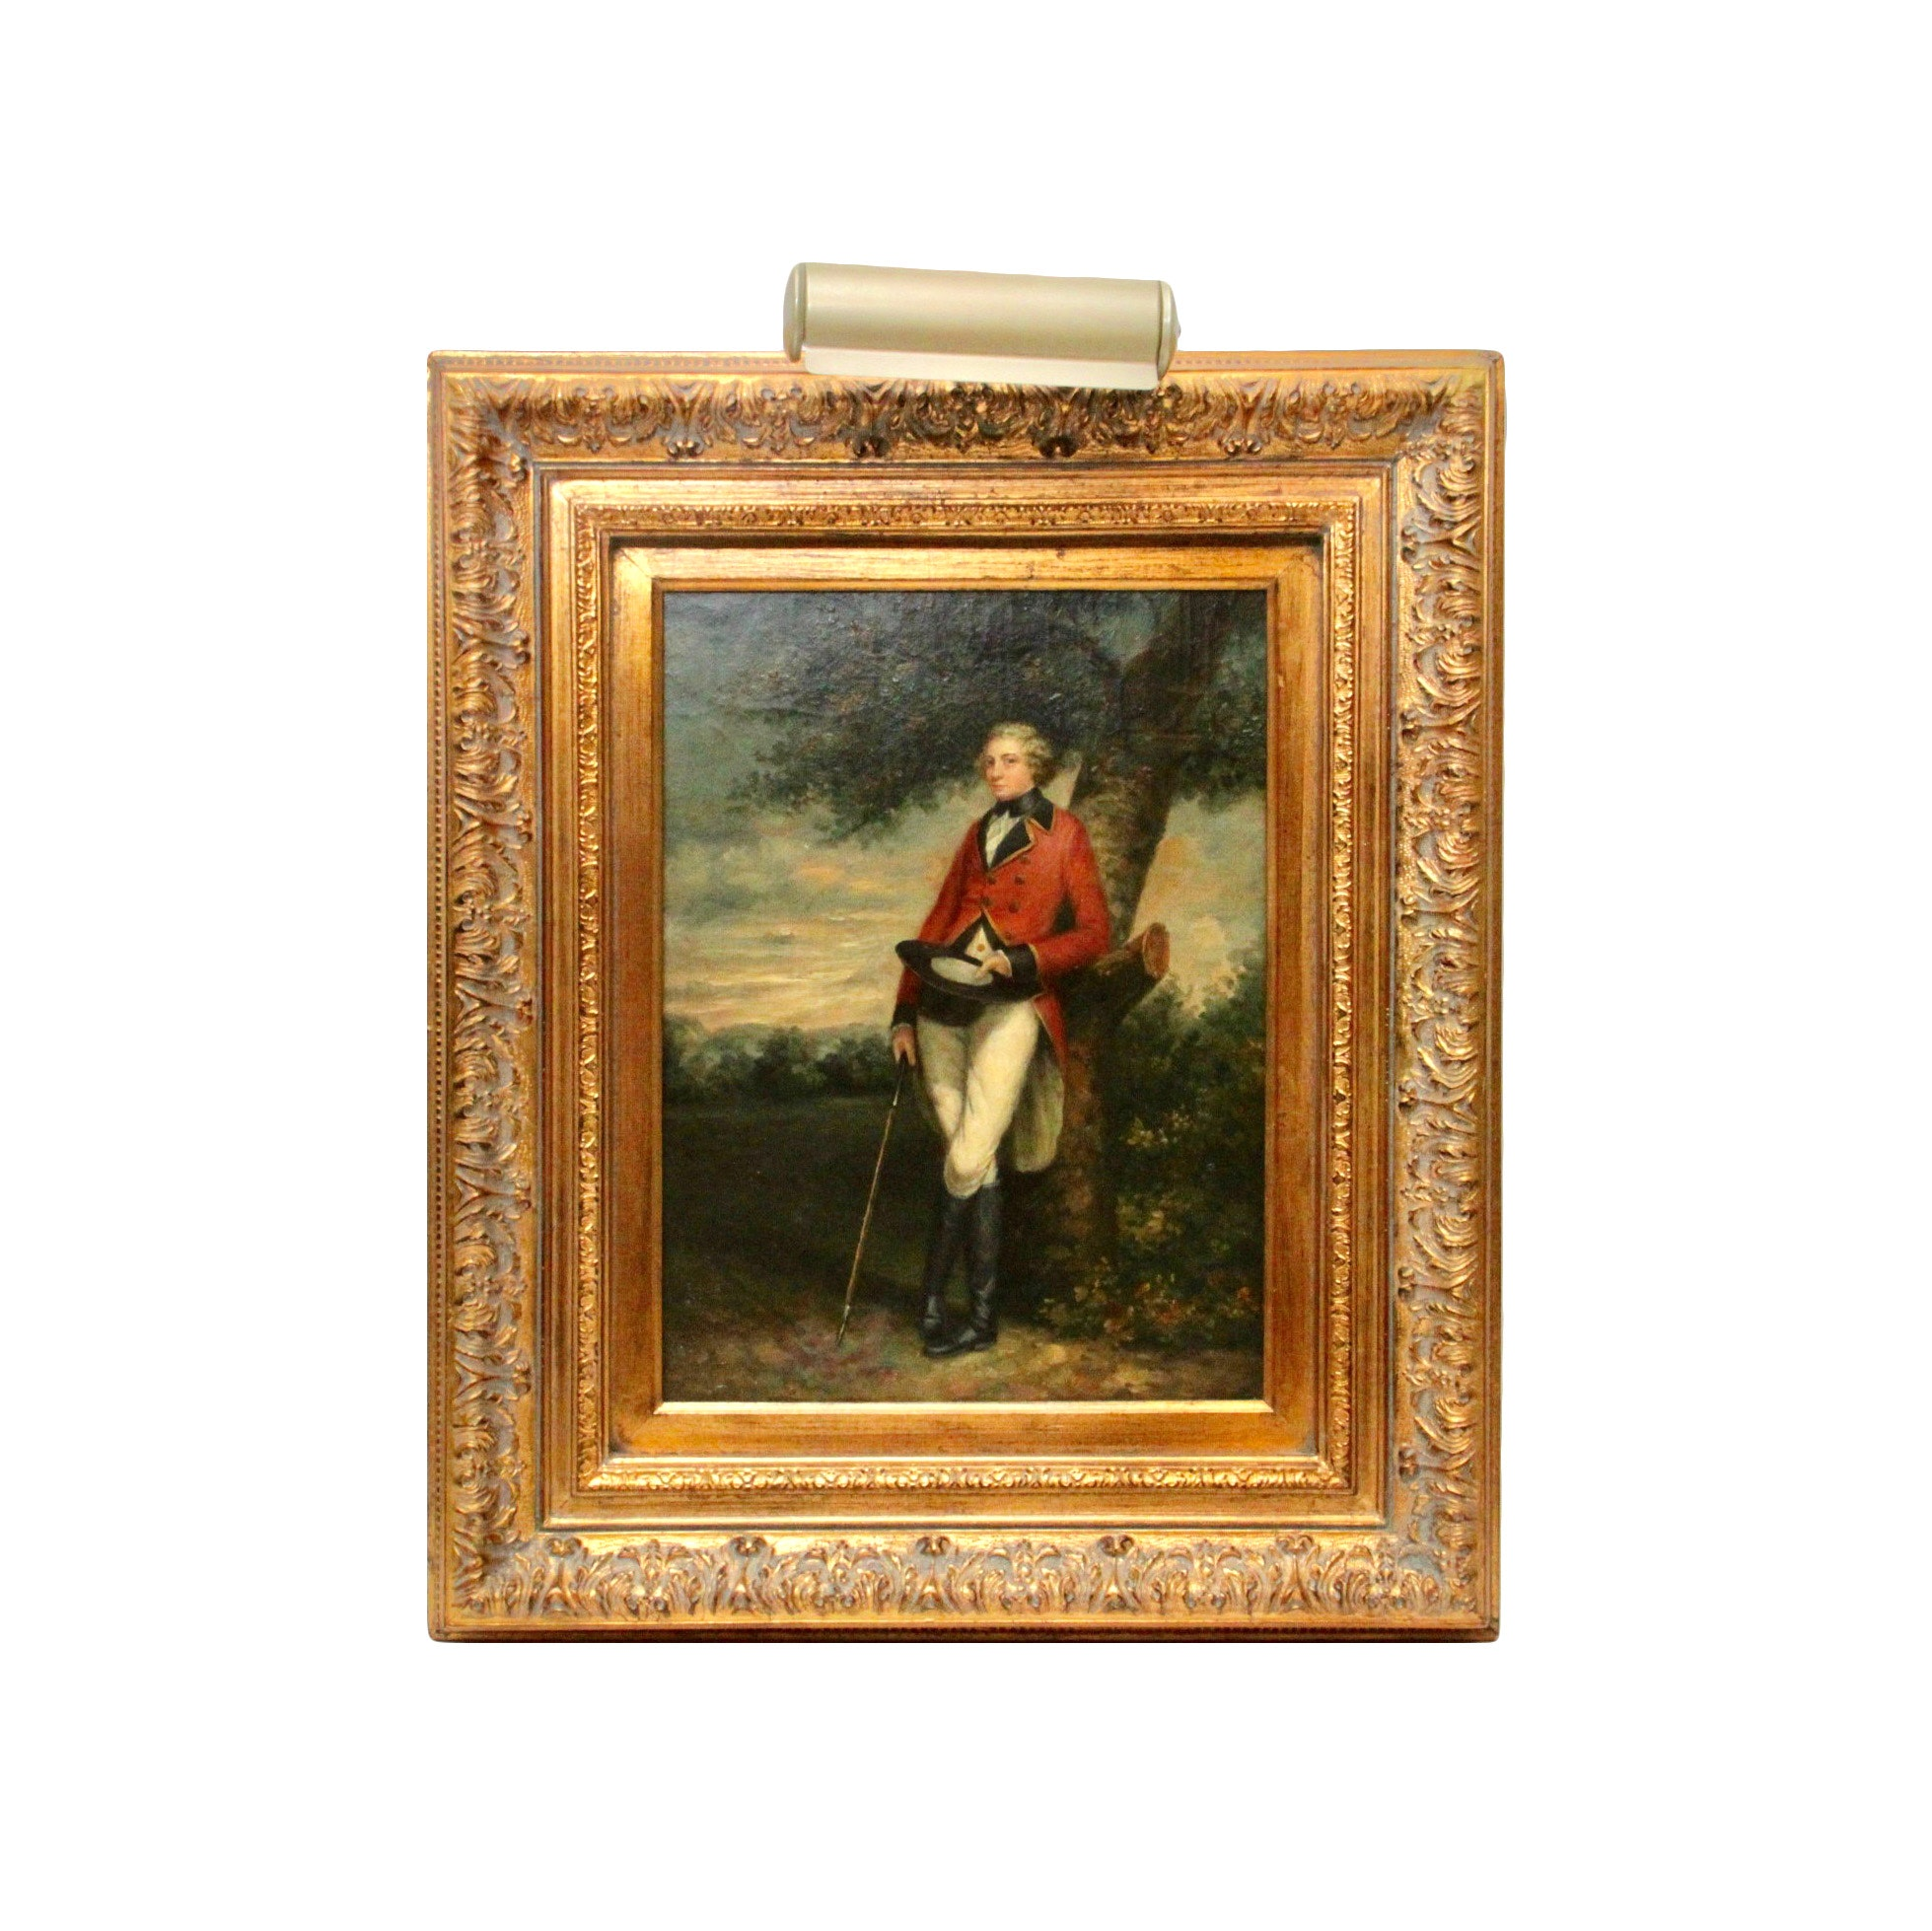 Ornate Framed Acrylic Painting on Board of Englishman